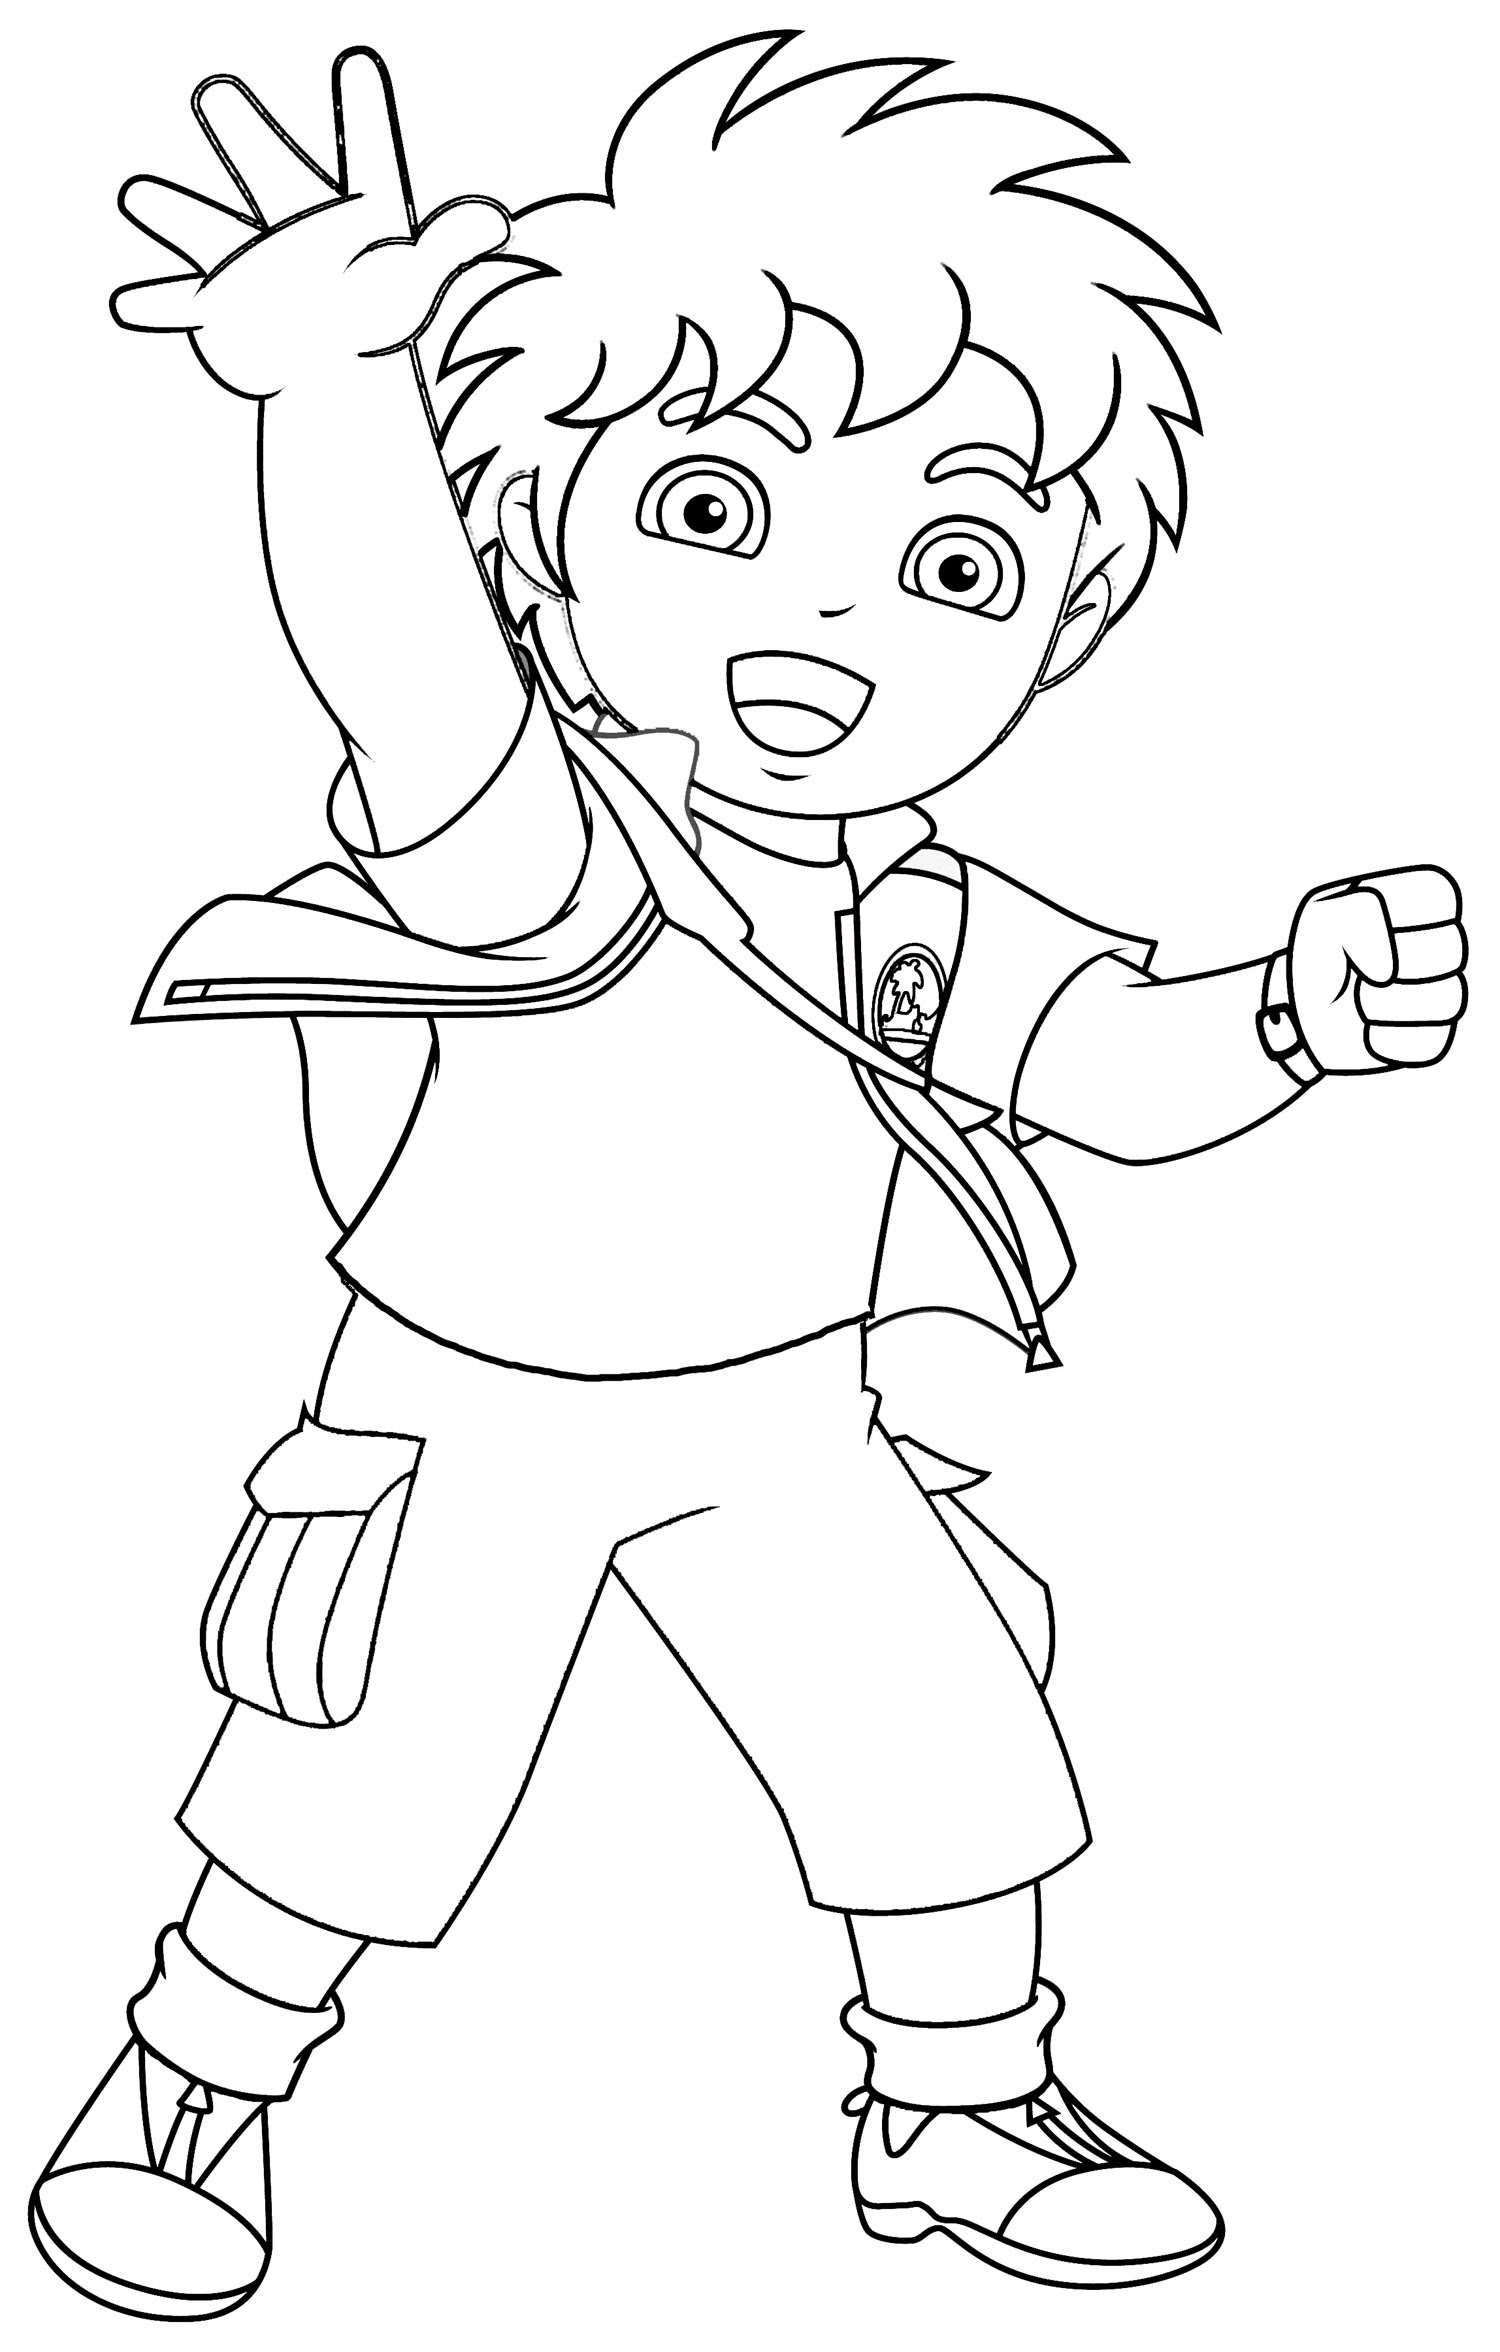 Nick Jr Coloring Pages (8) | Coloring Kids